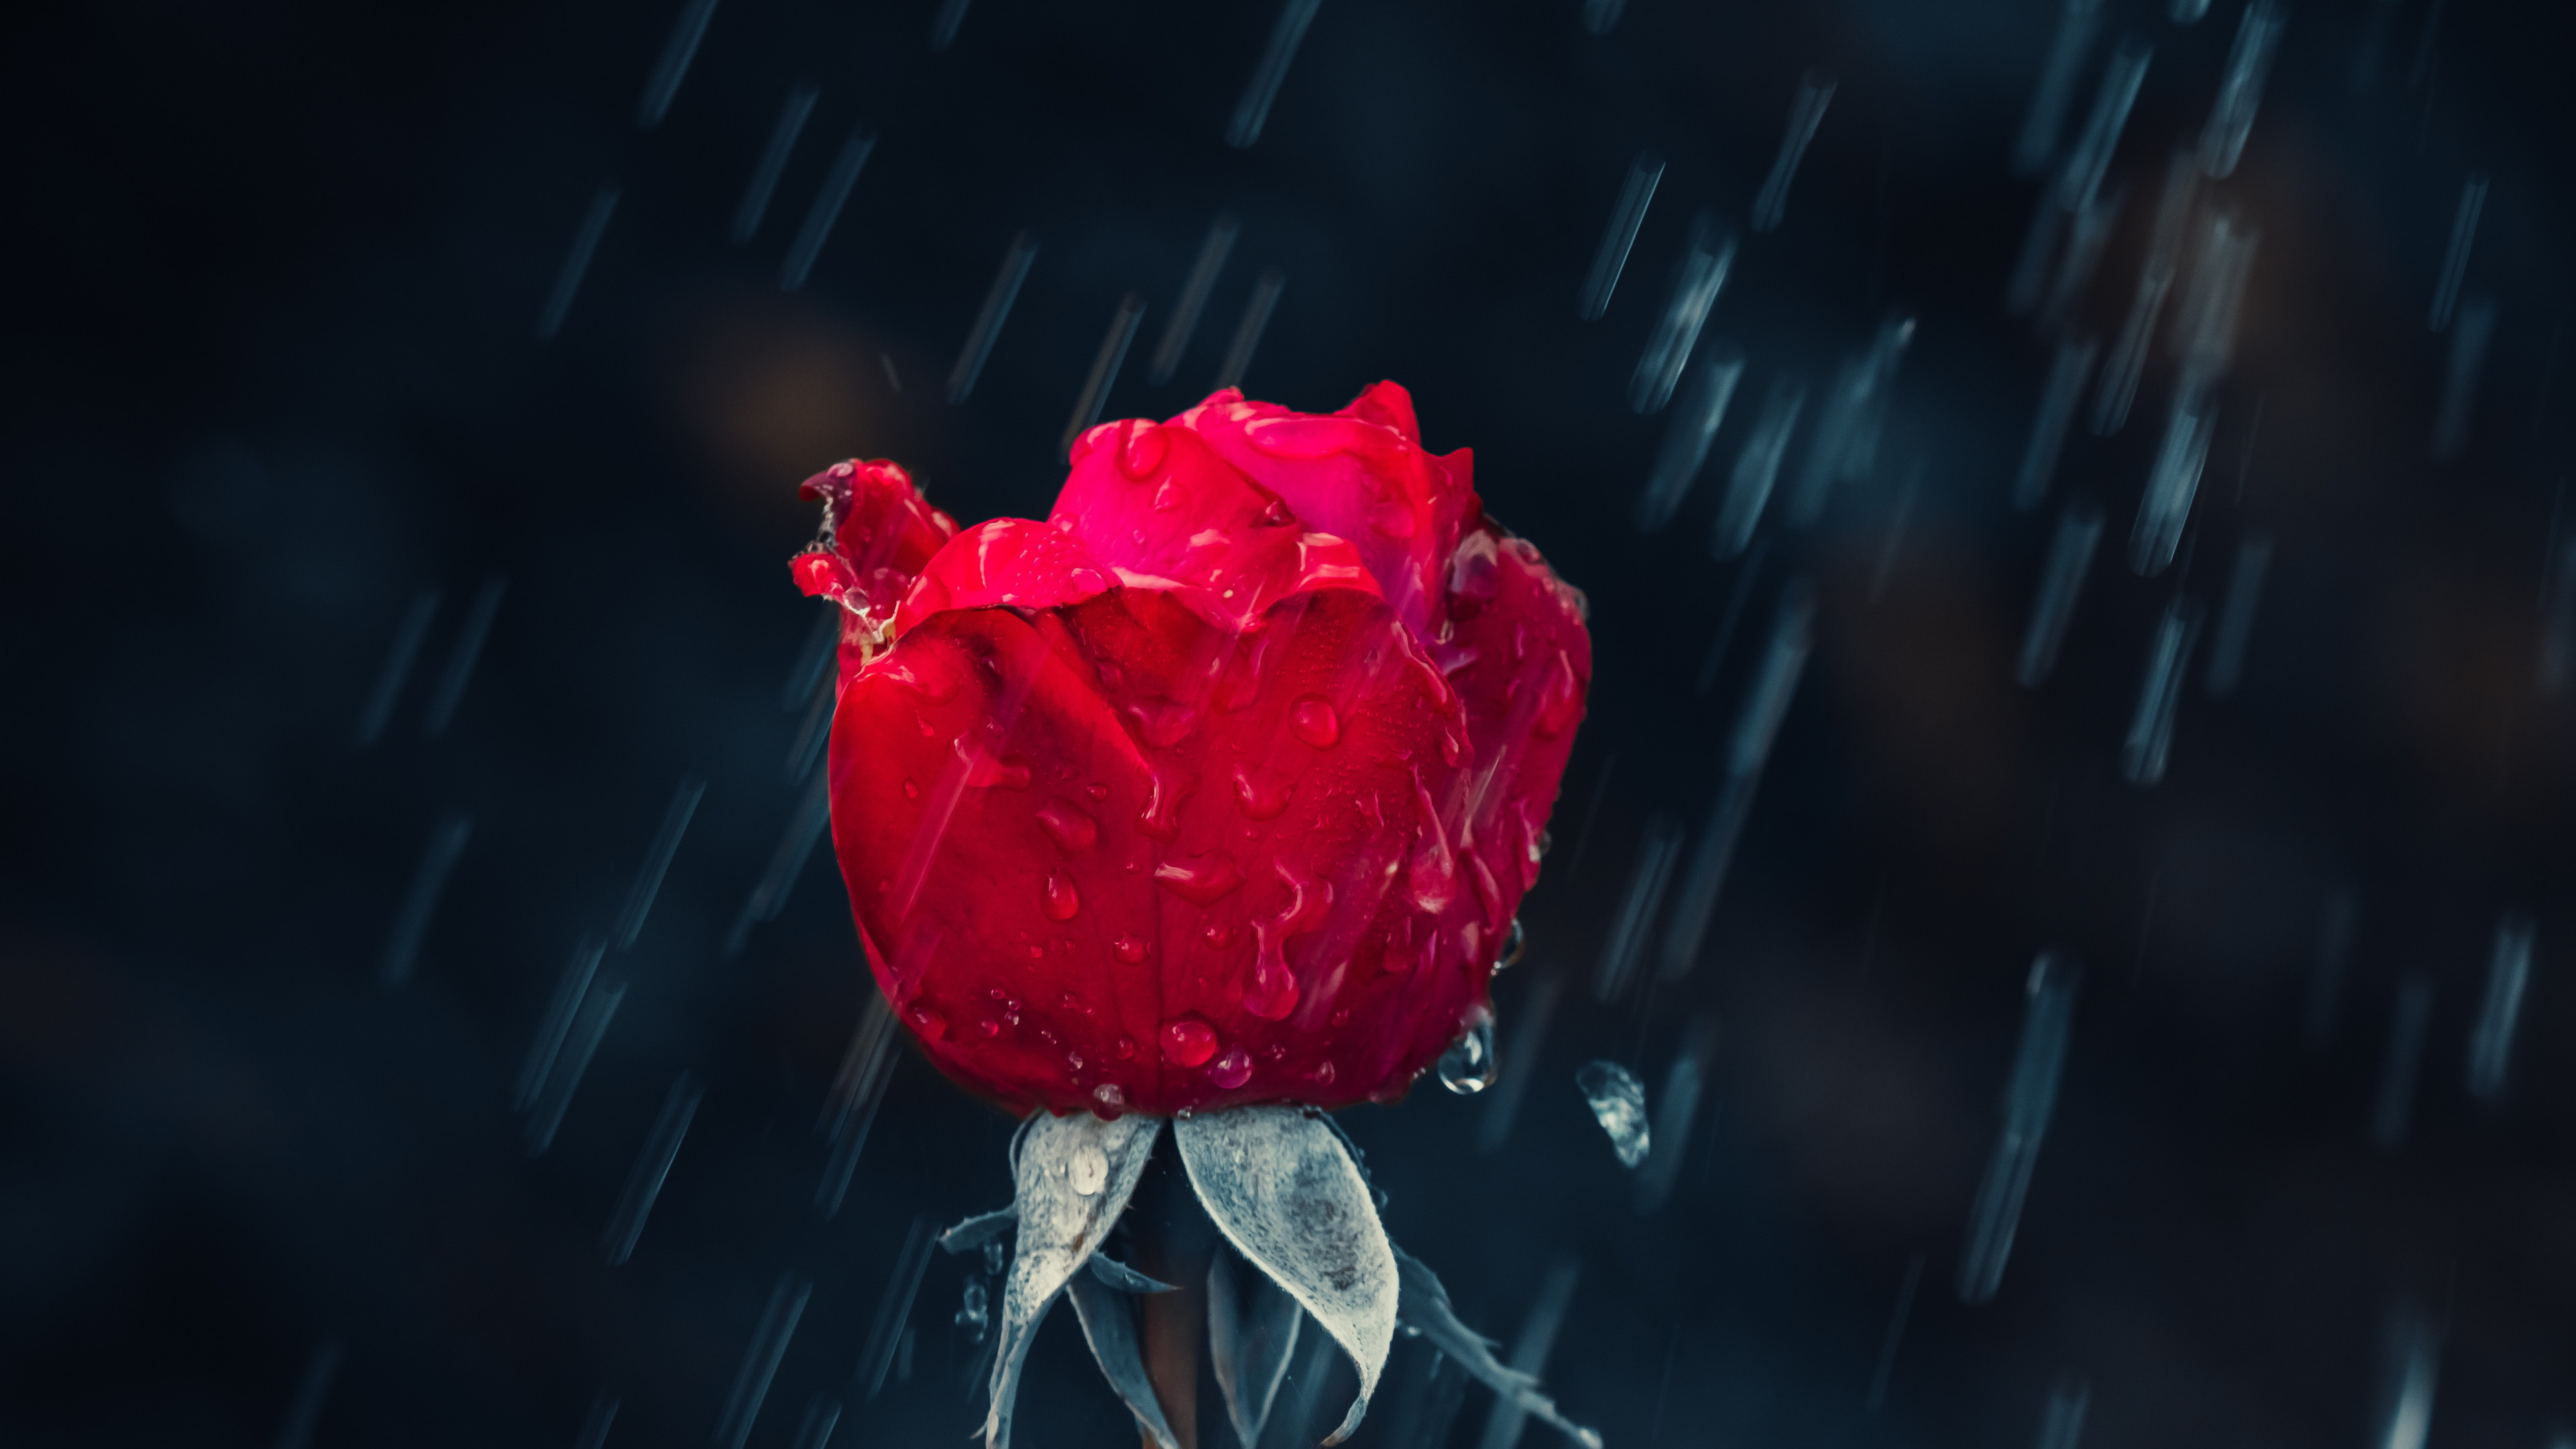 Red rose and raindrops wallpaper 3840x2160